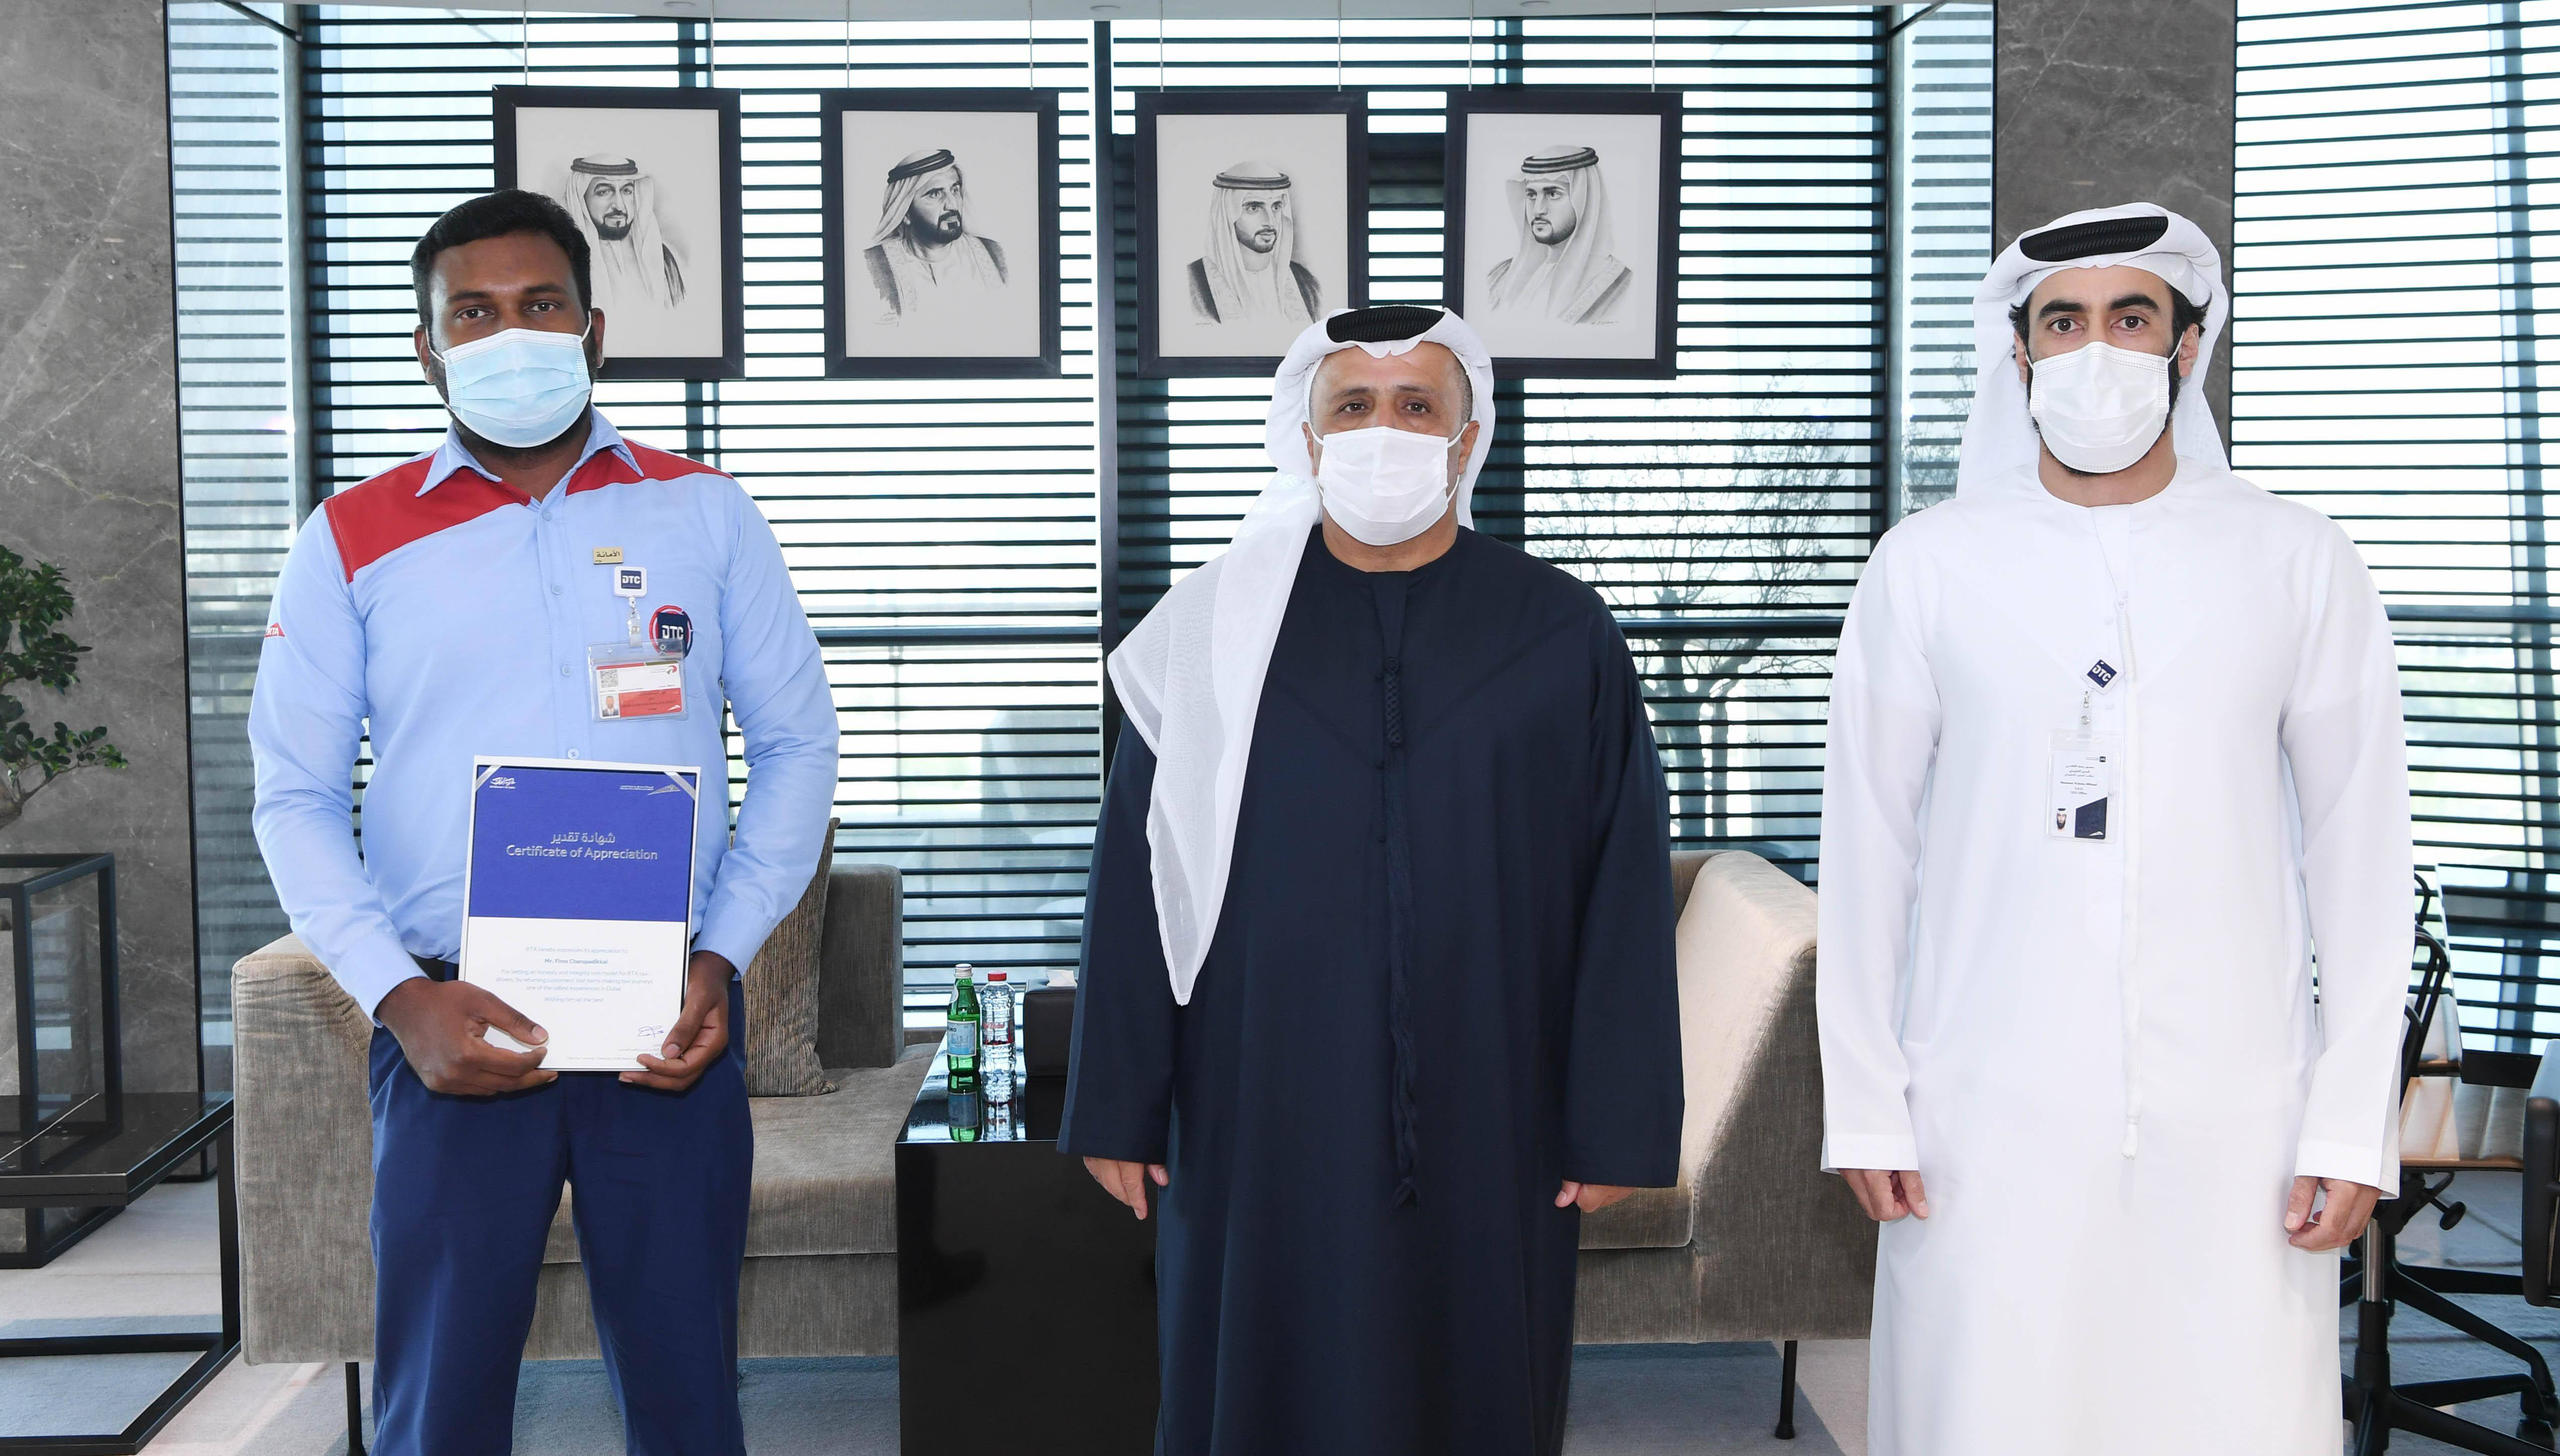 Dubai: 4 honest, helpful drivers honoured